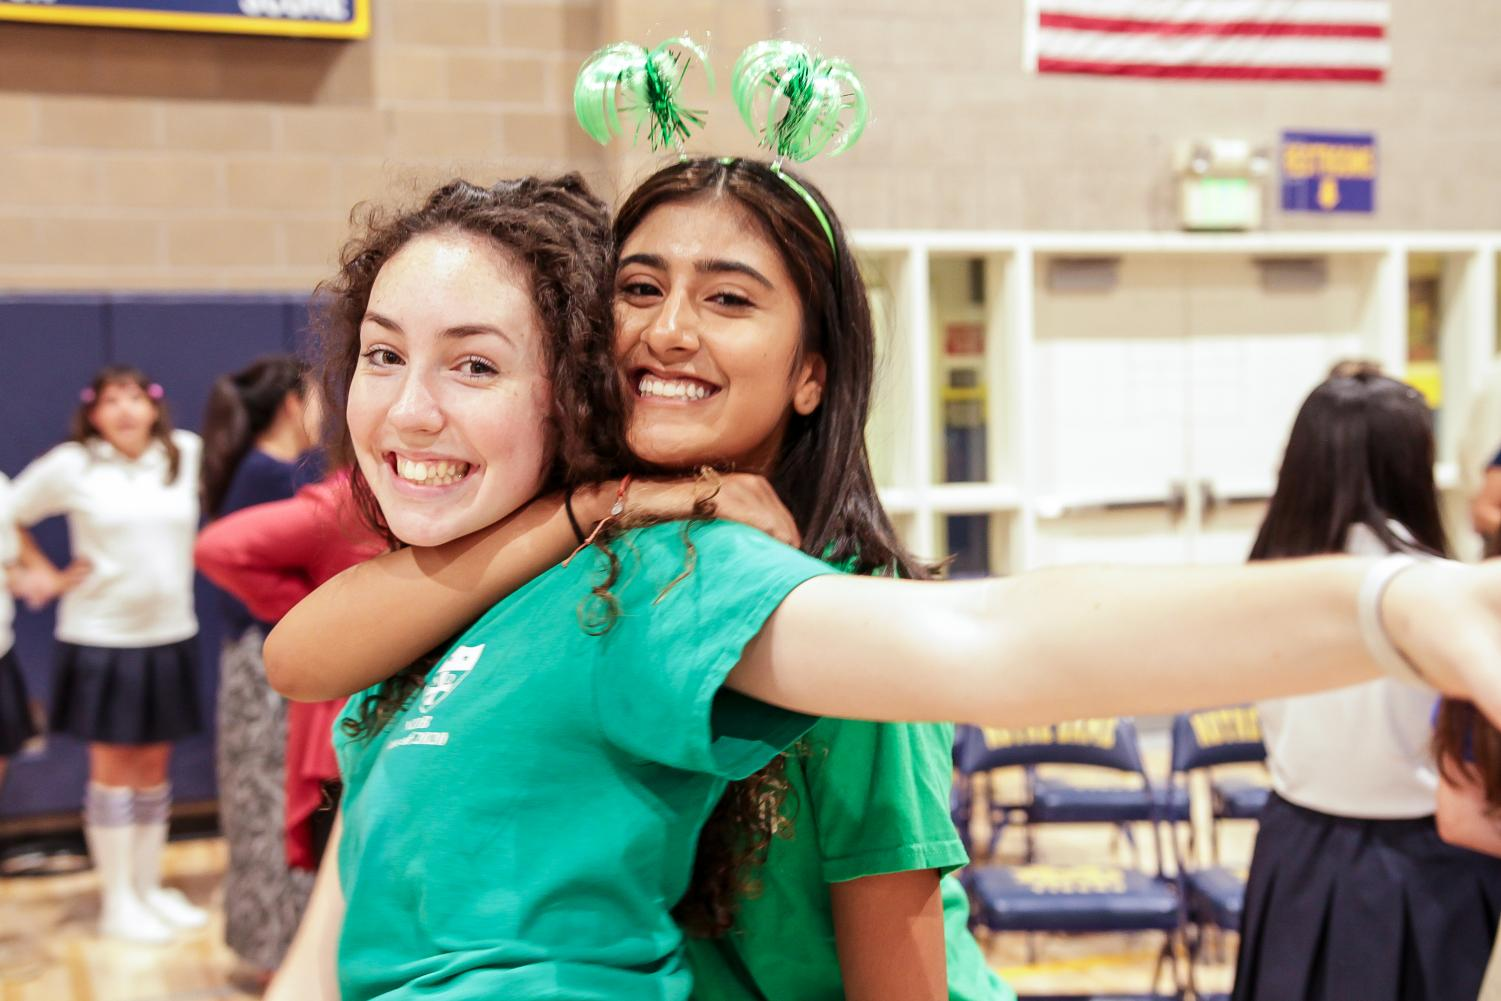 Juniors Kate Rose Keighran and Bianca Lopez hug after the Welcome Back Rally.